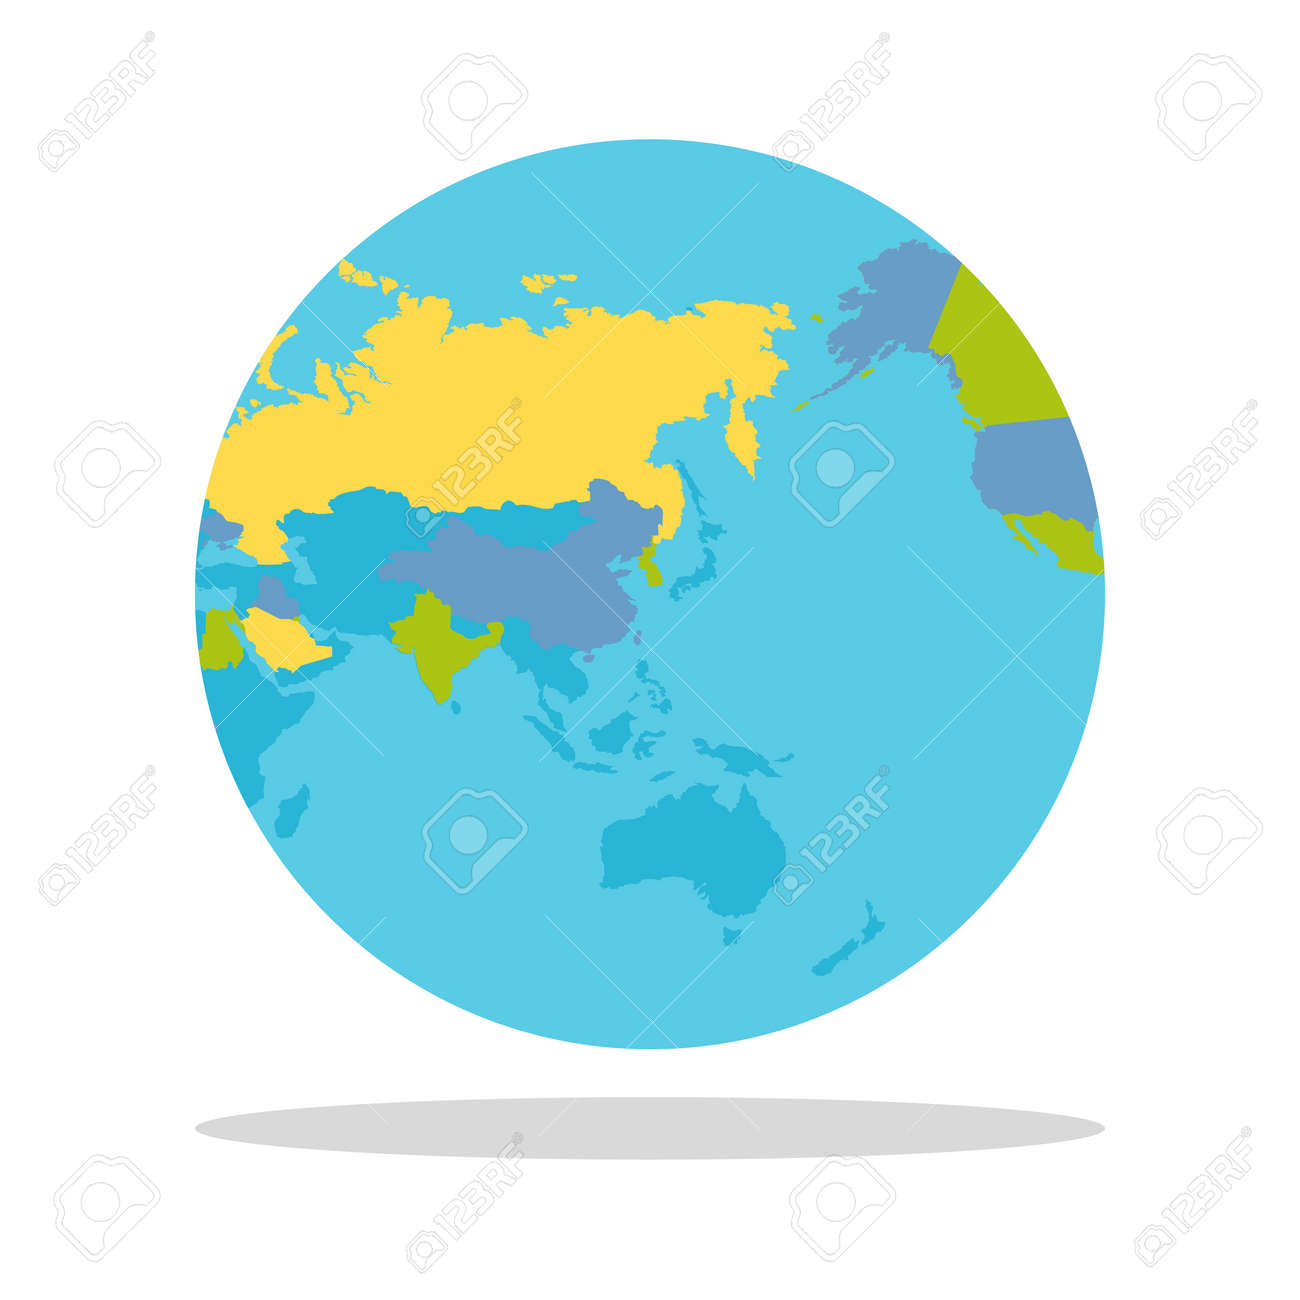 Planet Earth Vector Illustration World Globe With Political - Earth political map